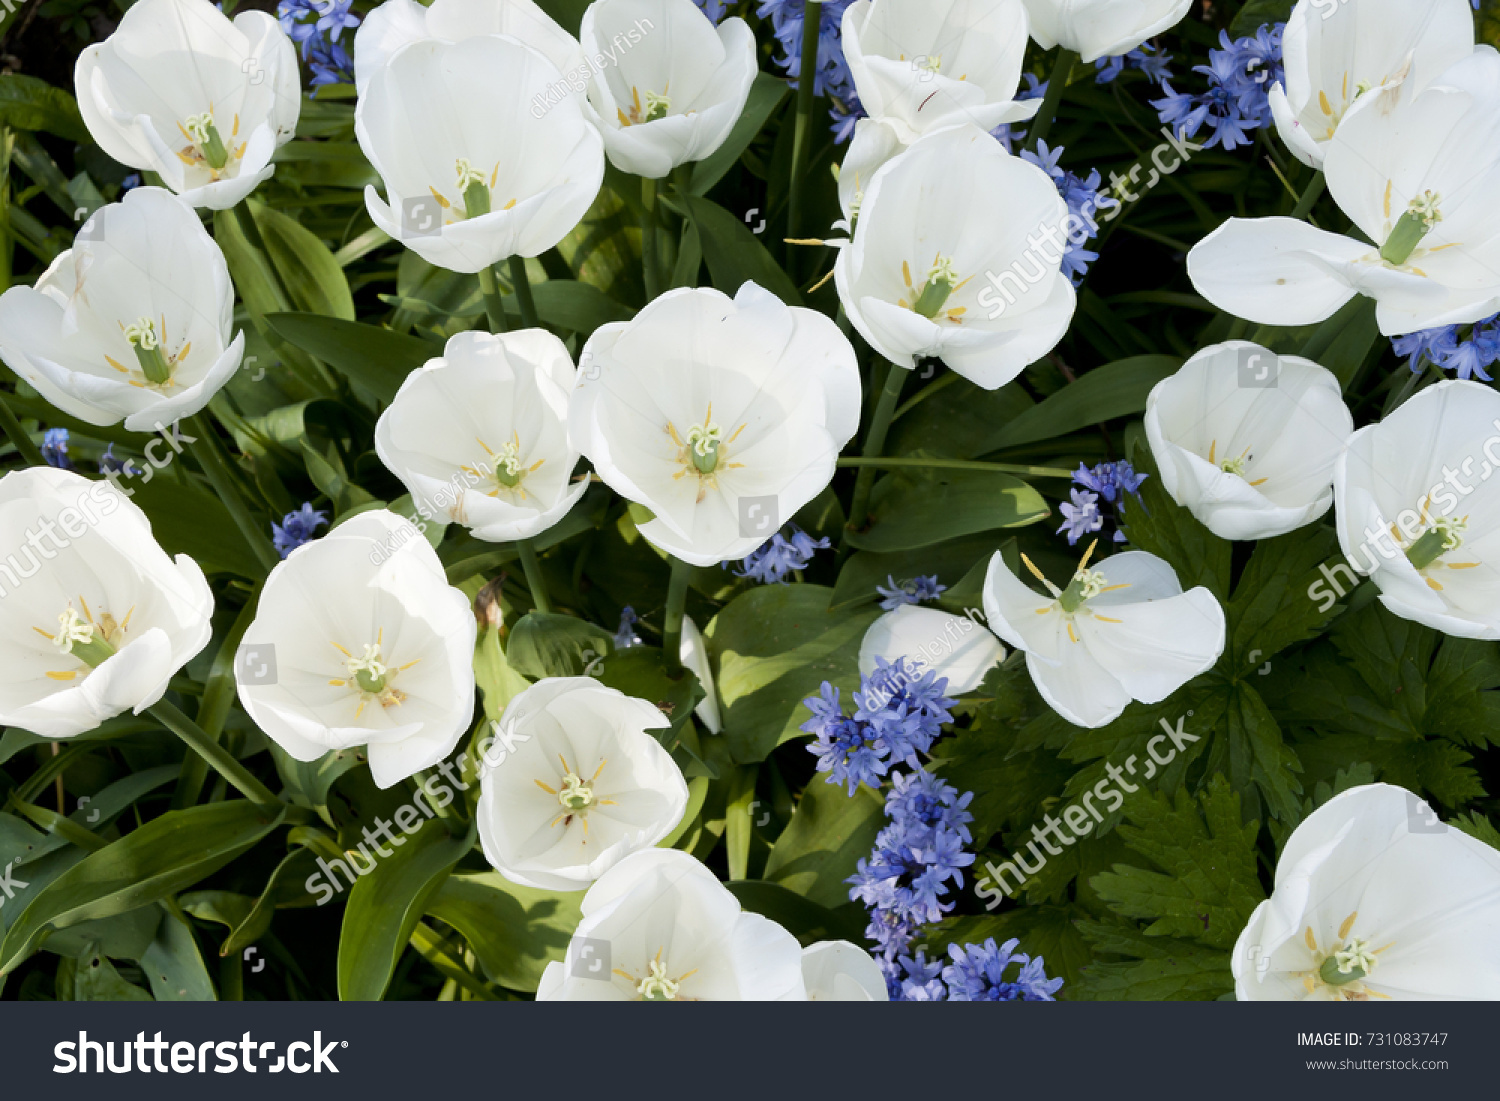 White Tulips Blue Bell Shaped Flowers Stock Photo Edit Now